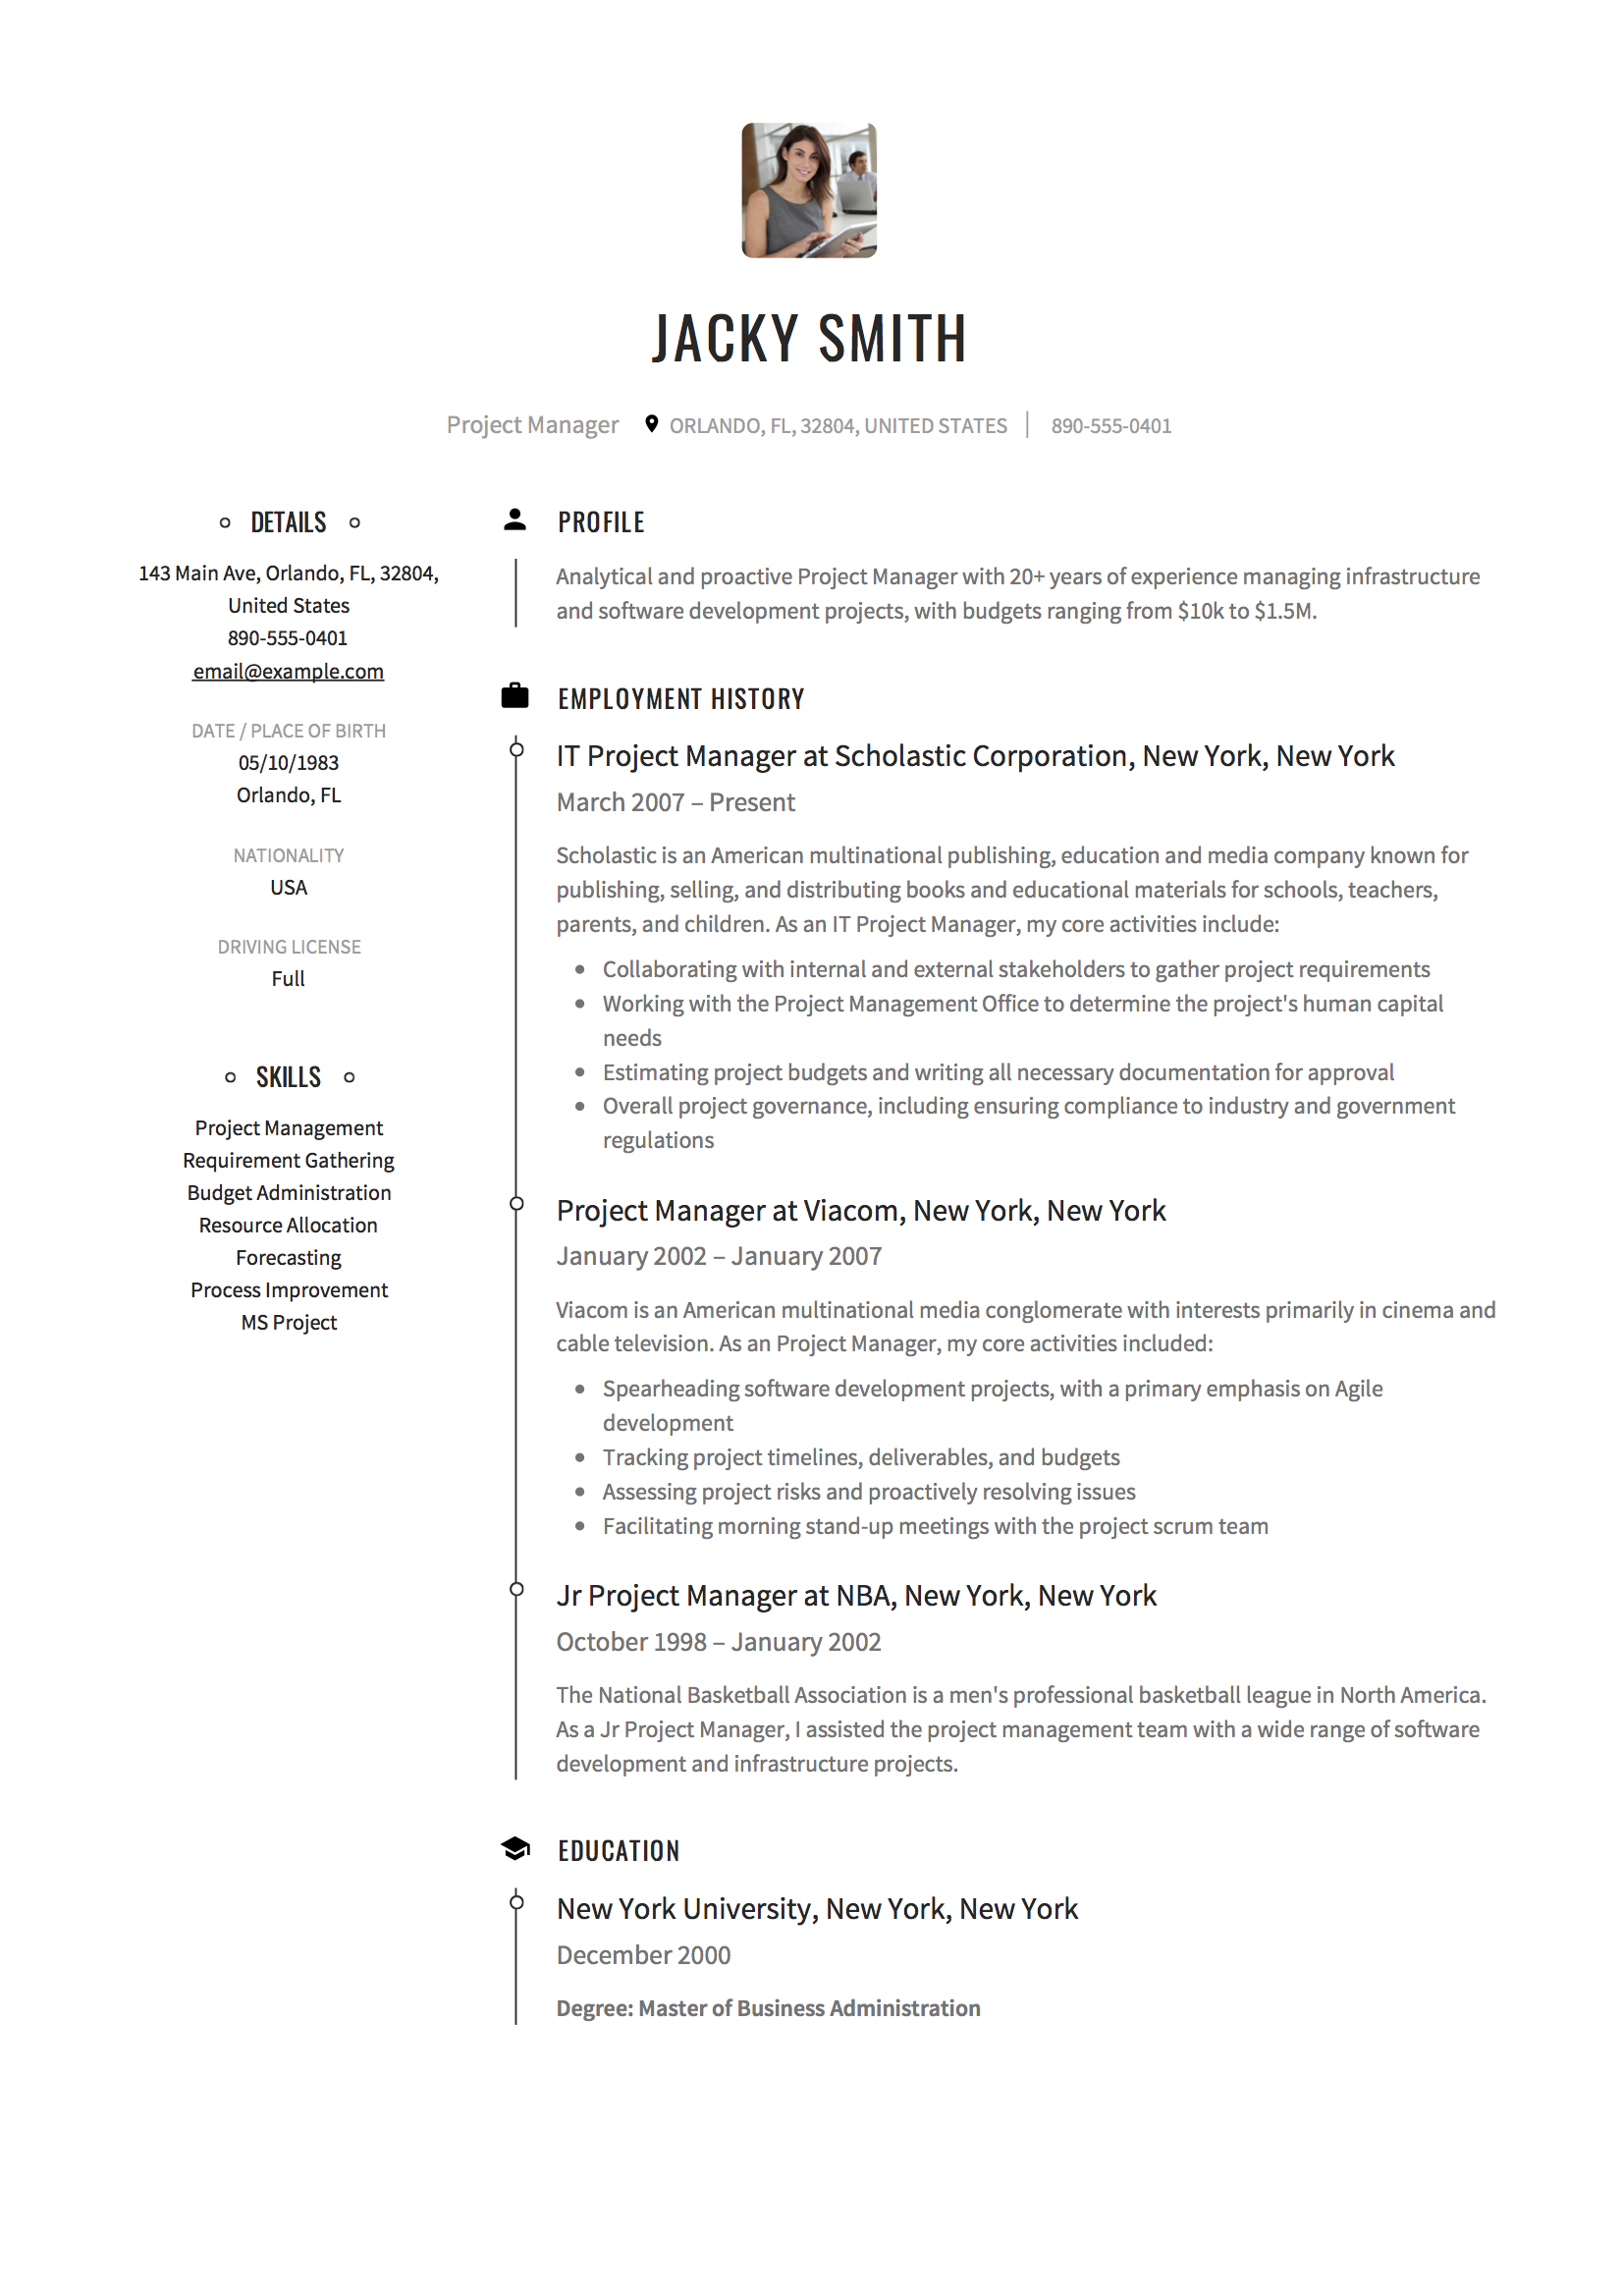 project manager resume examples full guide pdf word fox template college education on Resume Project Manager Resume Examples 2018